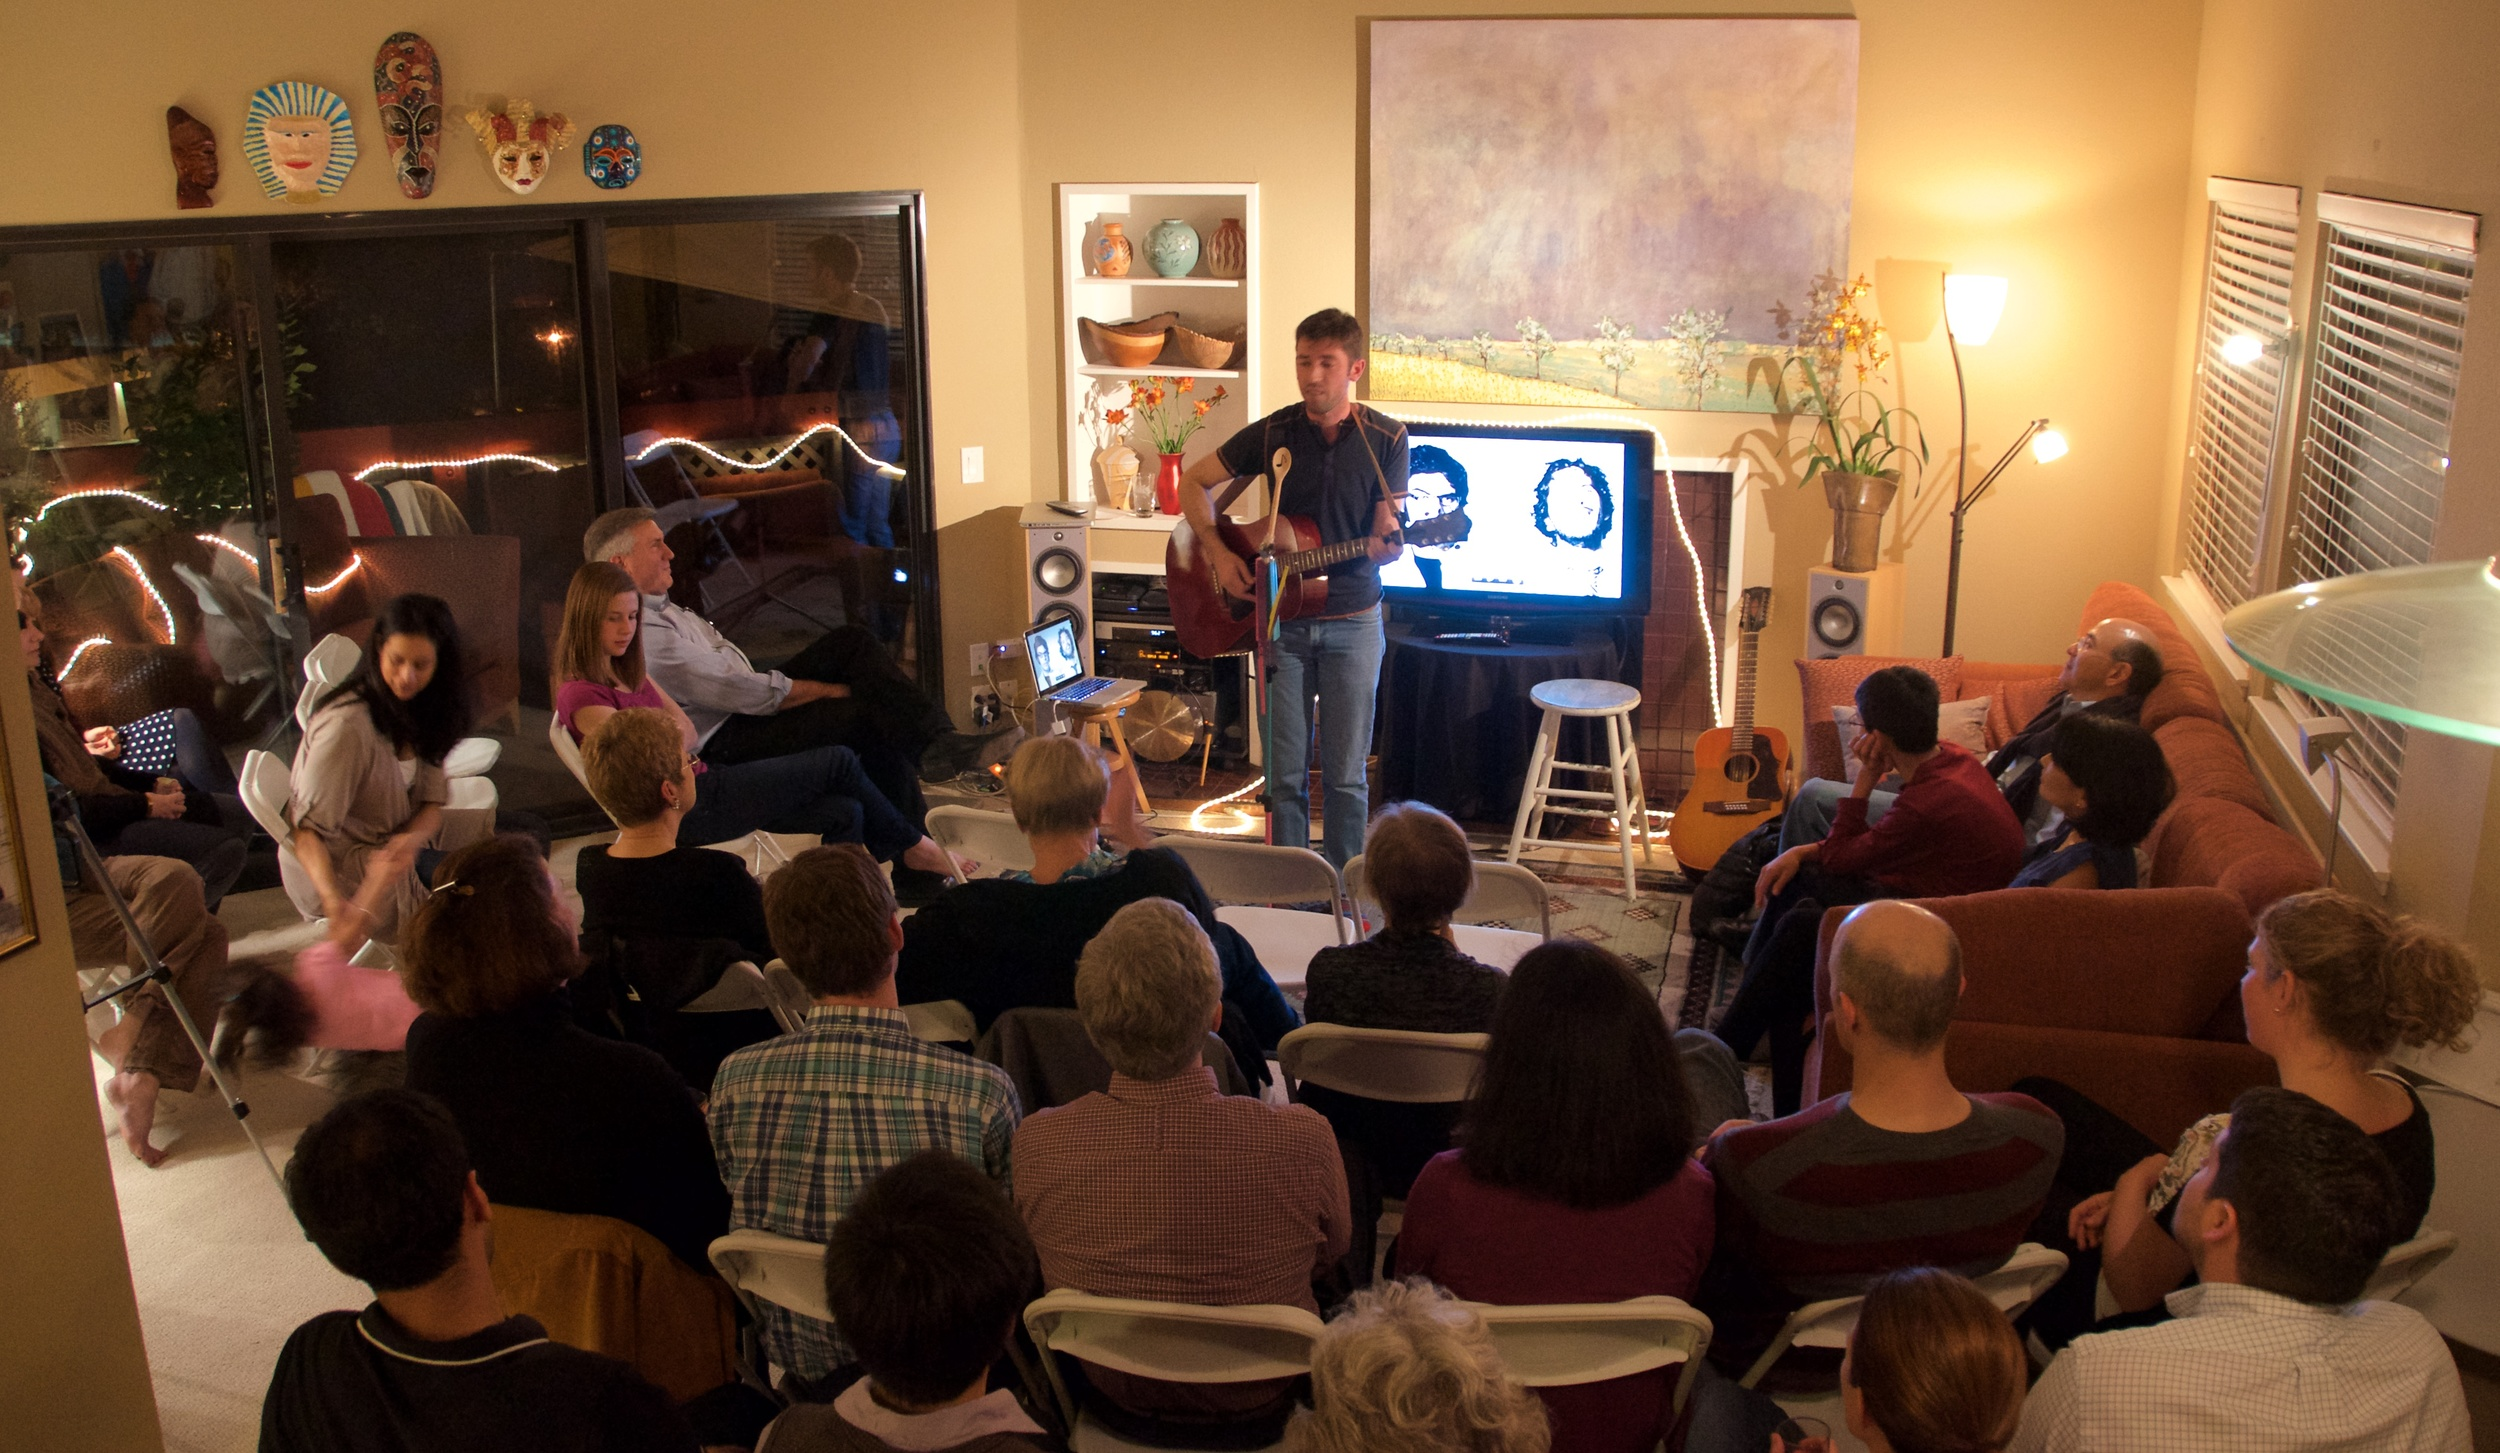 Live in Palo Alto, March 2015